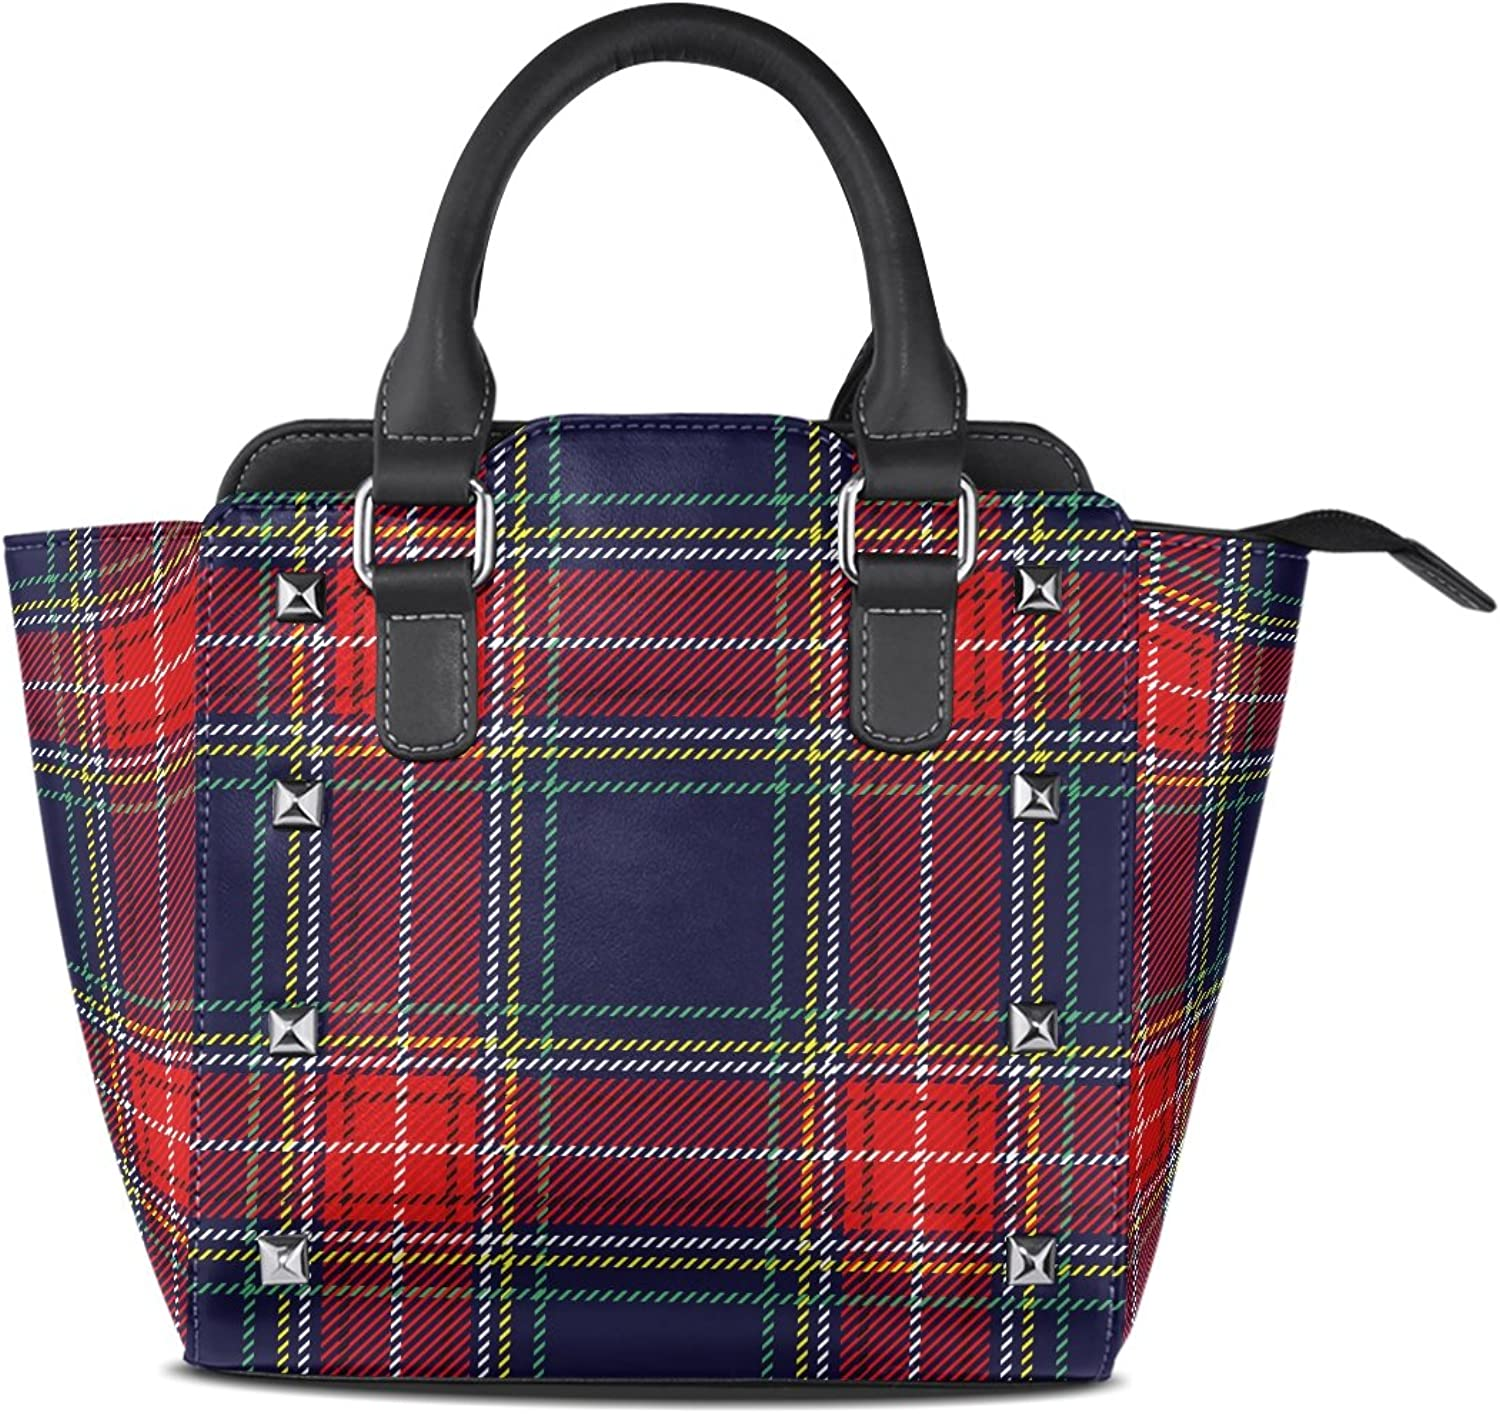 My Little Nest Women's Top Handle Satchel Handbag Traditional Dark bluee Red Tartan Plaid Stripes Ladies PU Leather Shoulder Bag Crossbody Bag